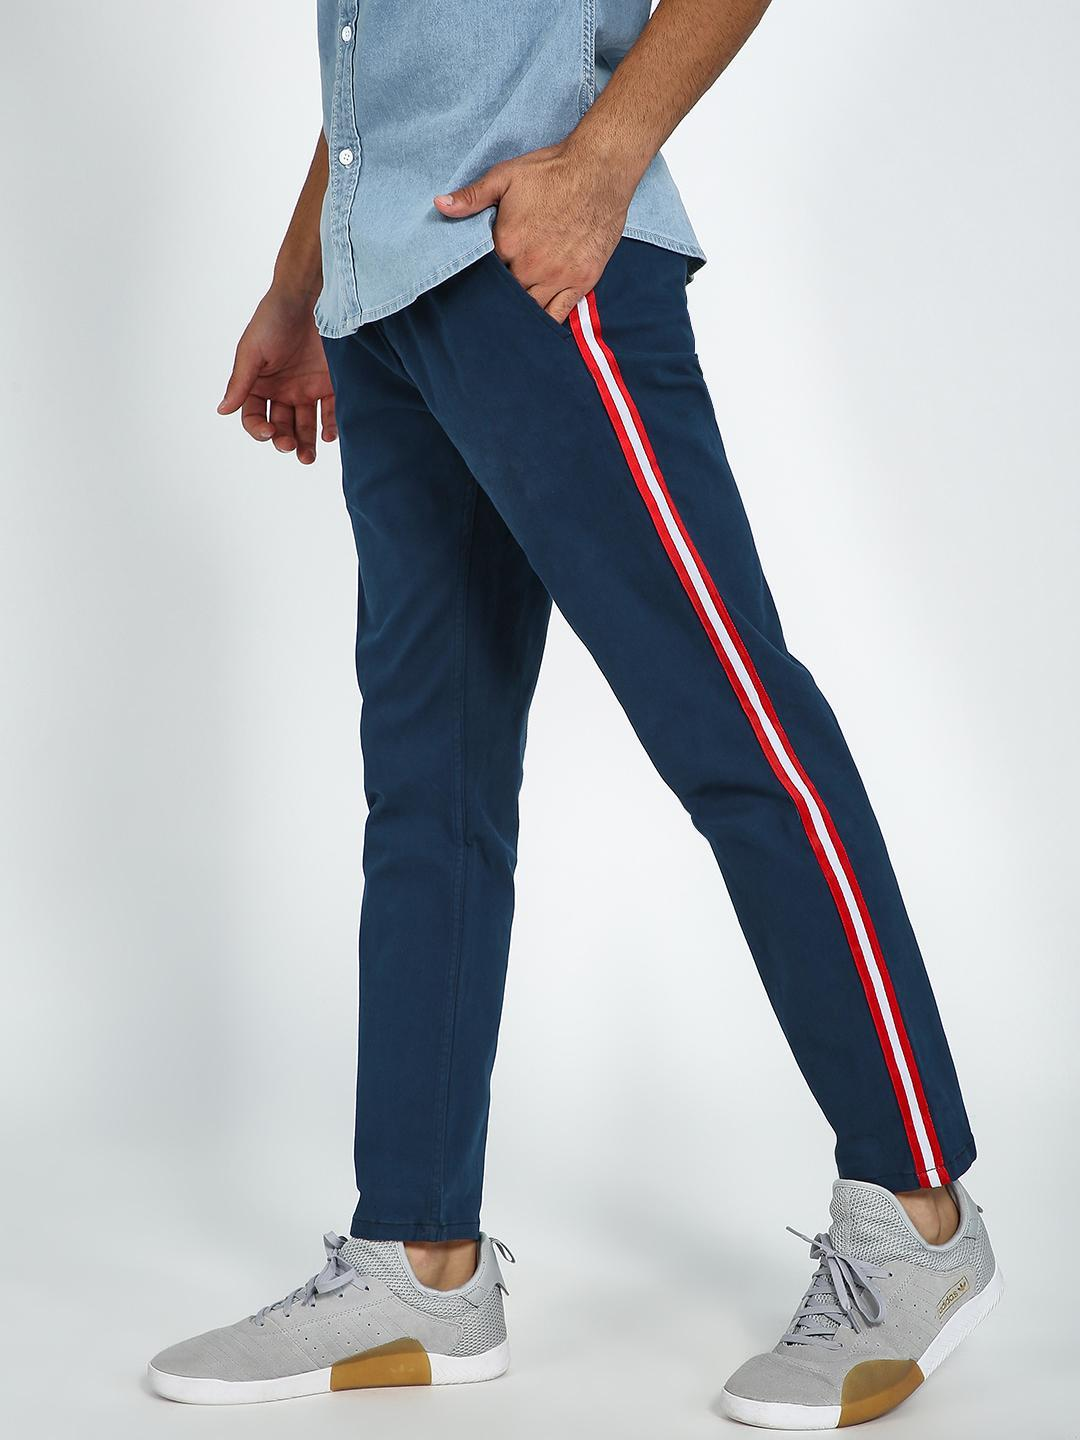 Blue Saint Navy Contrast Side Tape Drawcord Trouser 1